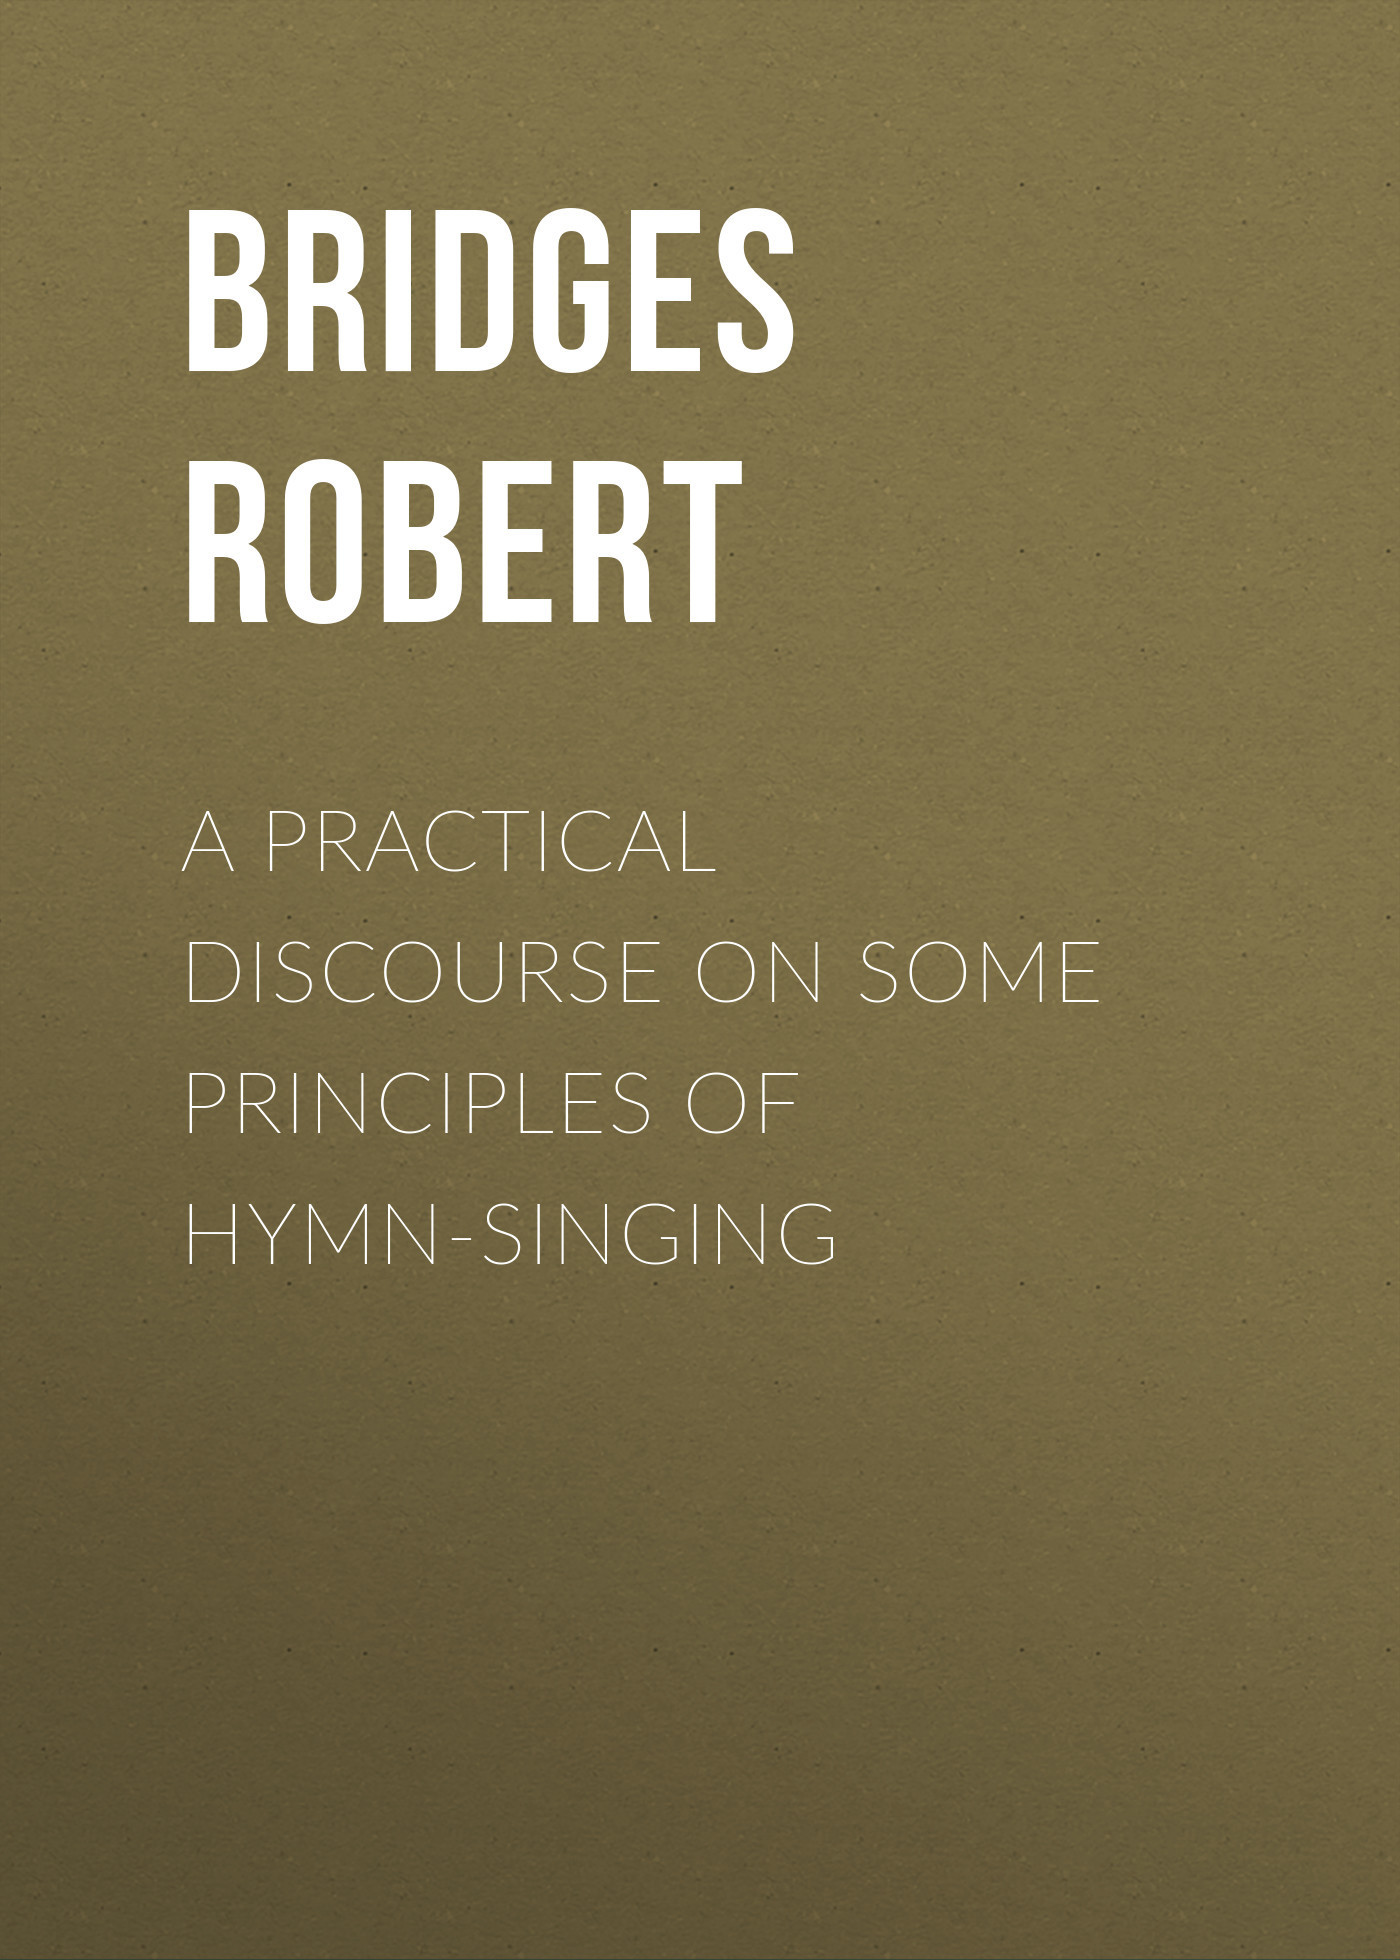 Bridges Robert A Practical Discourse on Some Principles of Hymn-Singing strategies behind humor formation a discourse pragmatic aspect